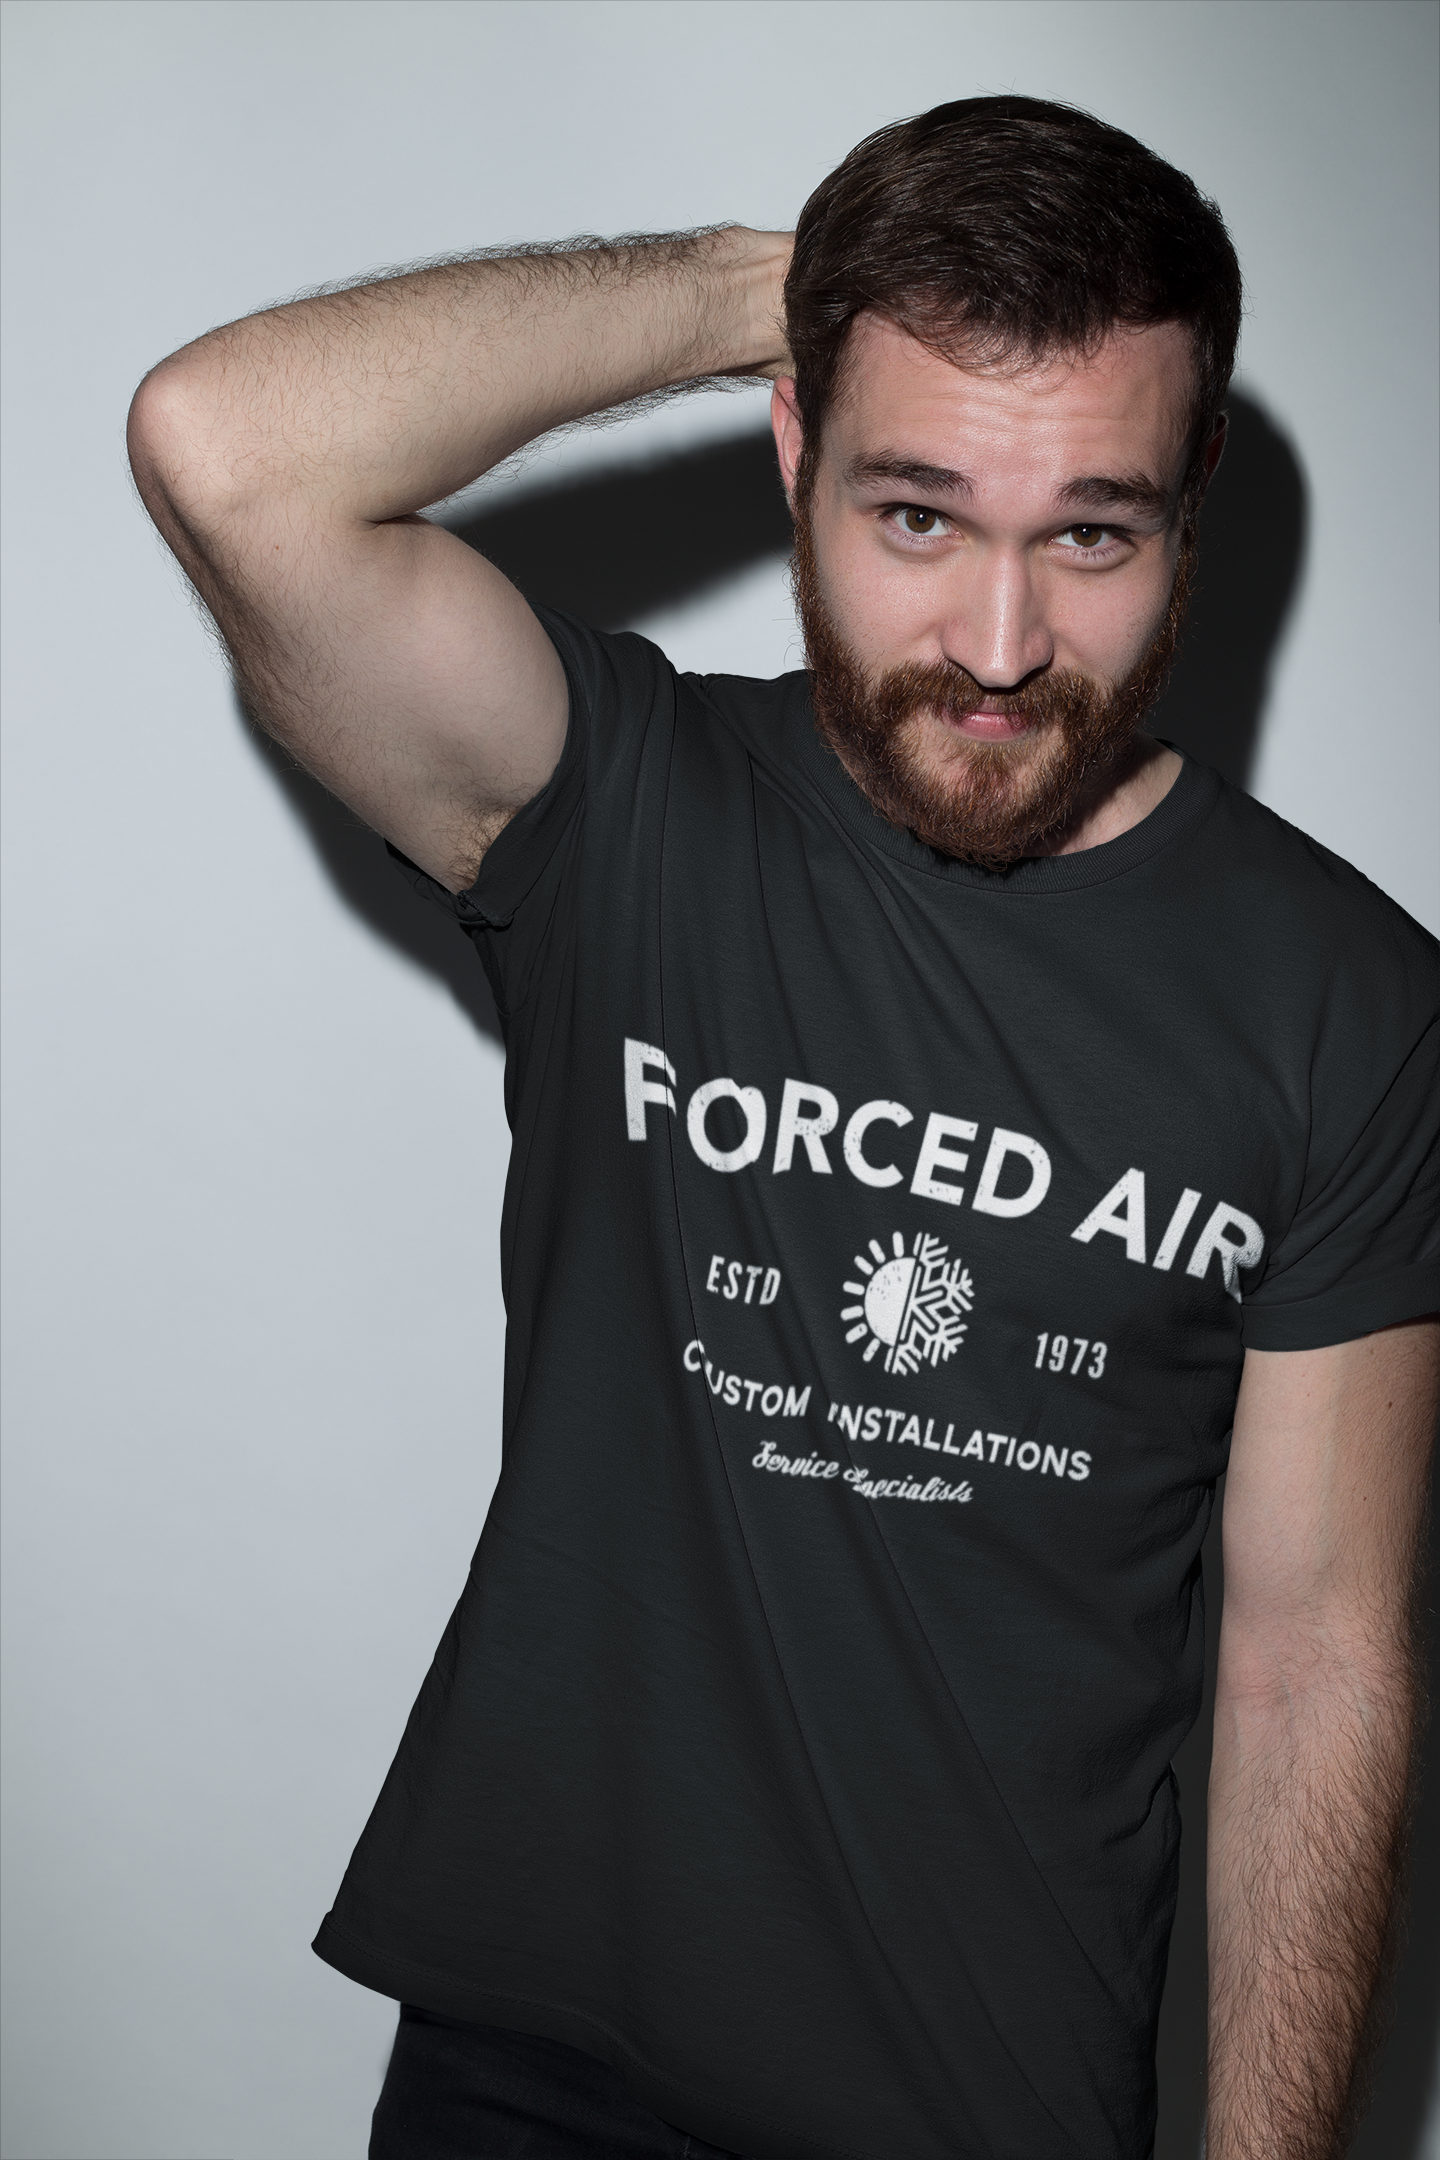 red-haired-man-wearing-a-tshirt-template-at-the-studio-a20683.png